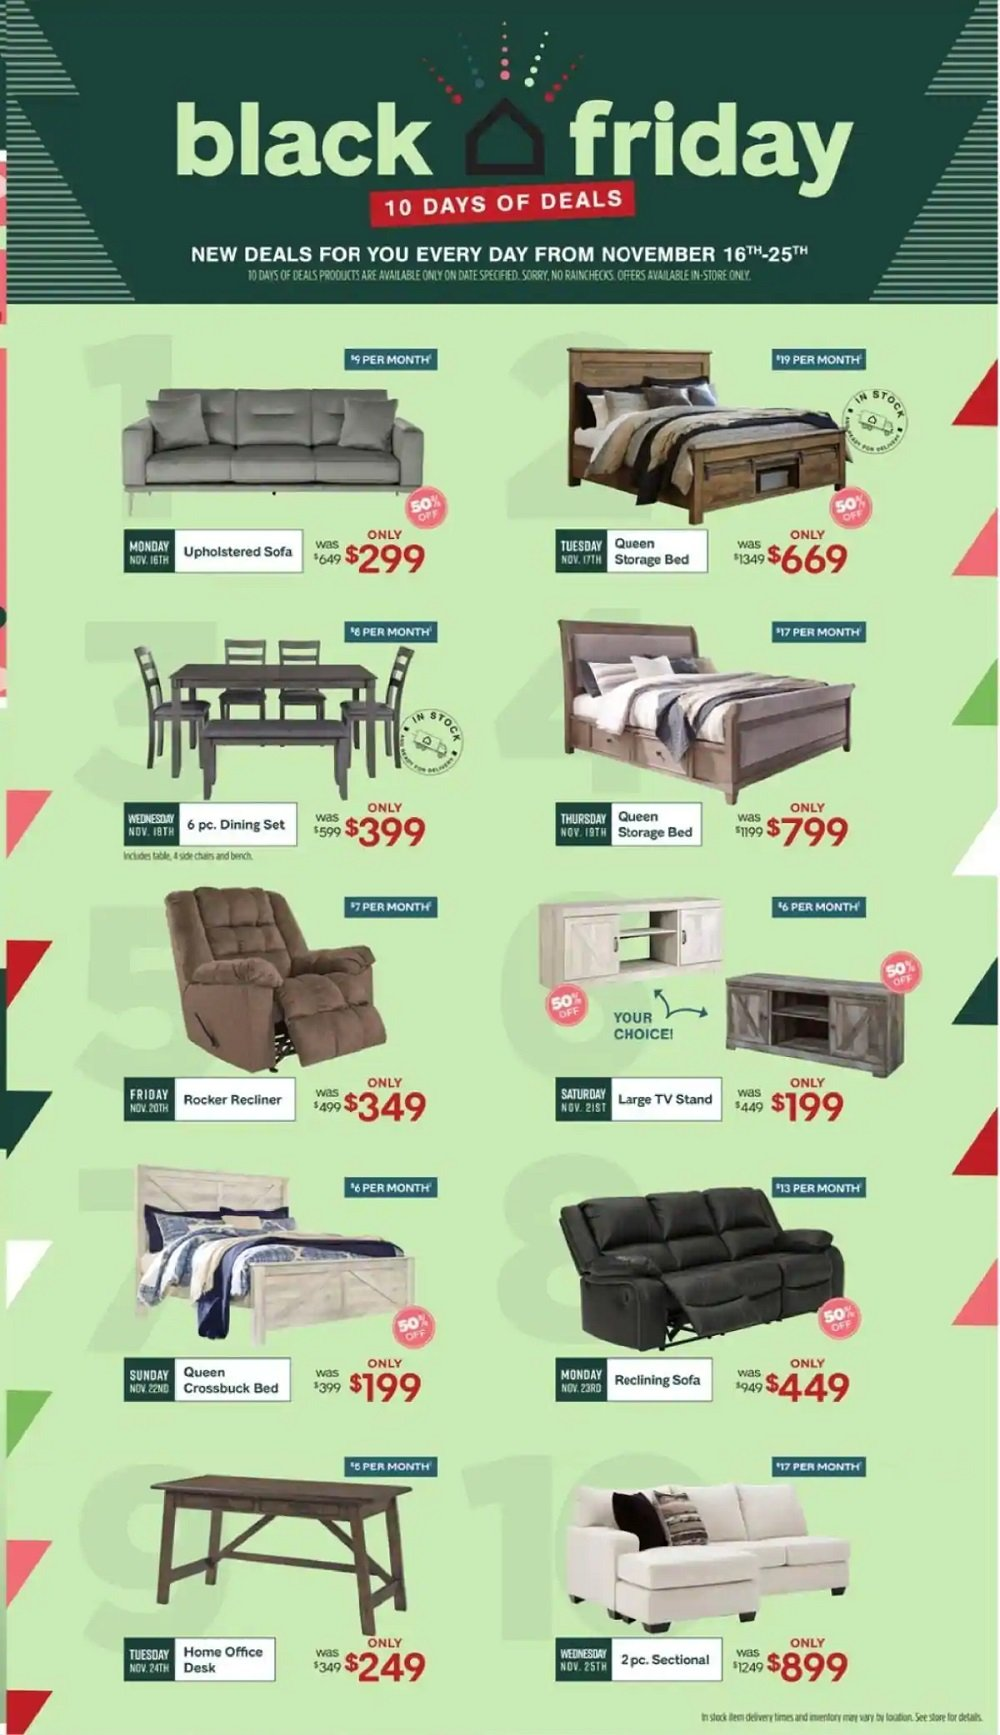 Ashley HomeStore Black Friday 2020 Page 2